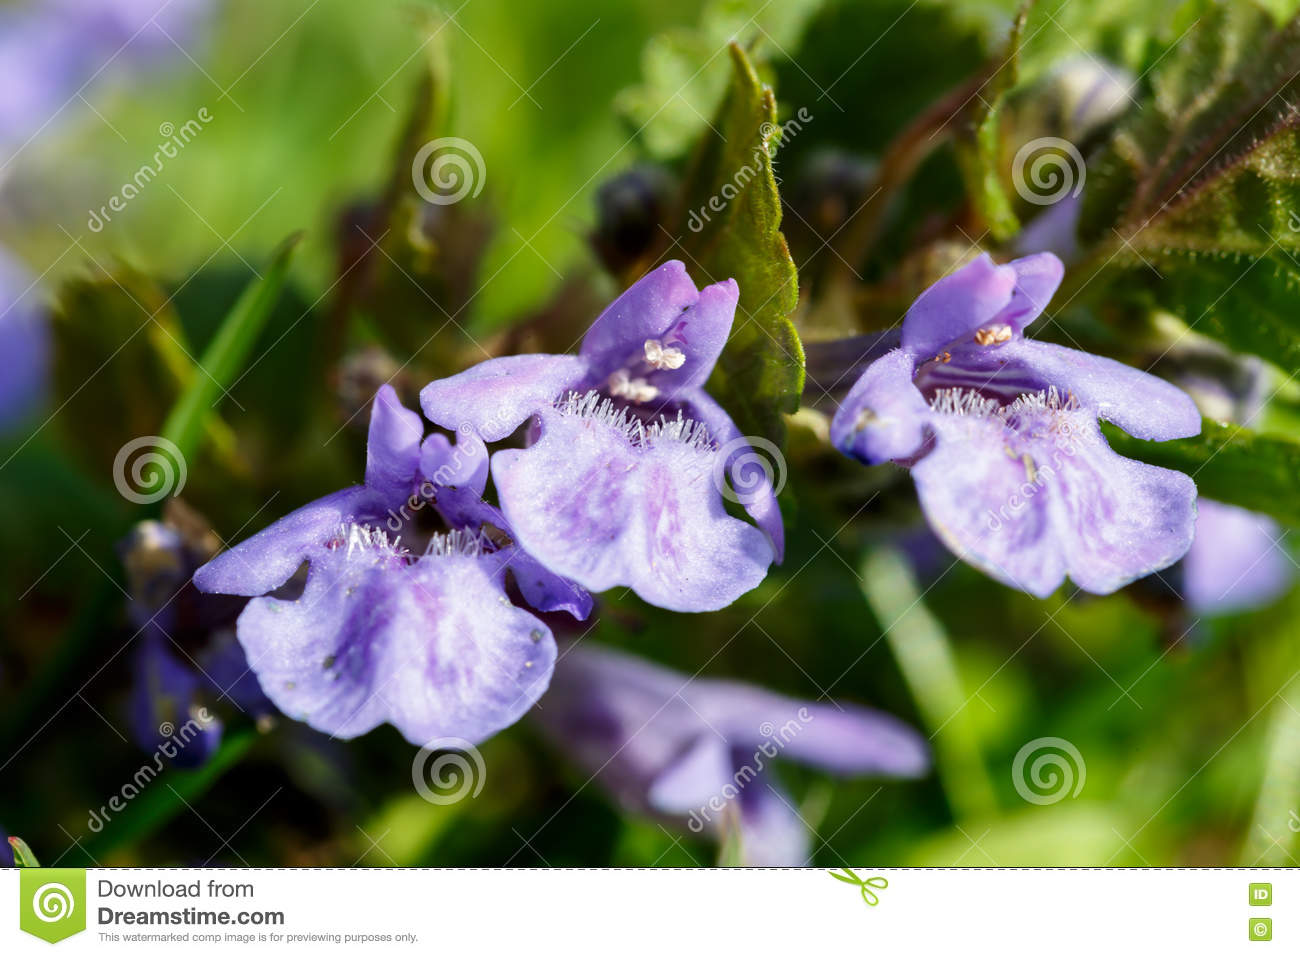 Ground ivy flower stock photo image of blue freshness 70510112 download ground ivy flower stock photo image of blue freshness 70510112 izmirmasajfo